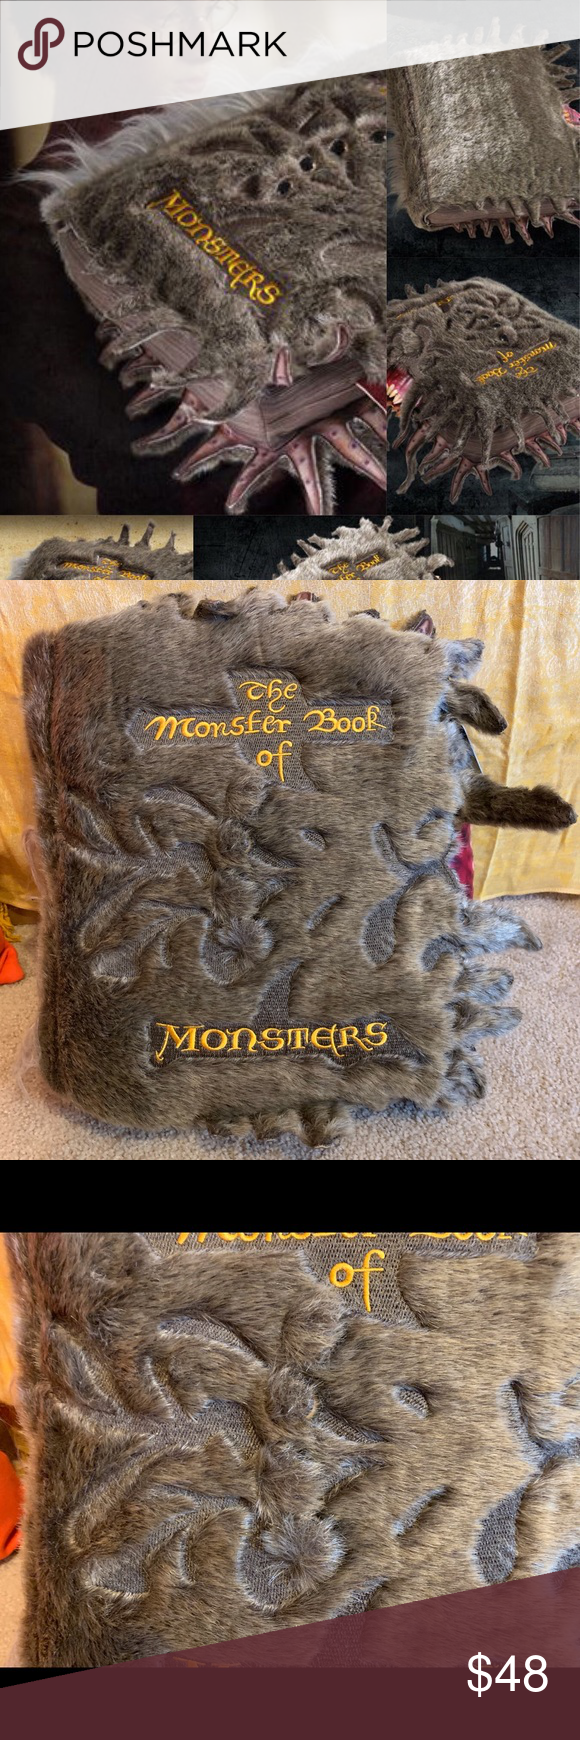 Harry Potter Book of Monsters Plush Pillow NWT NWT